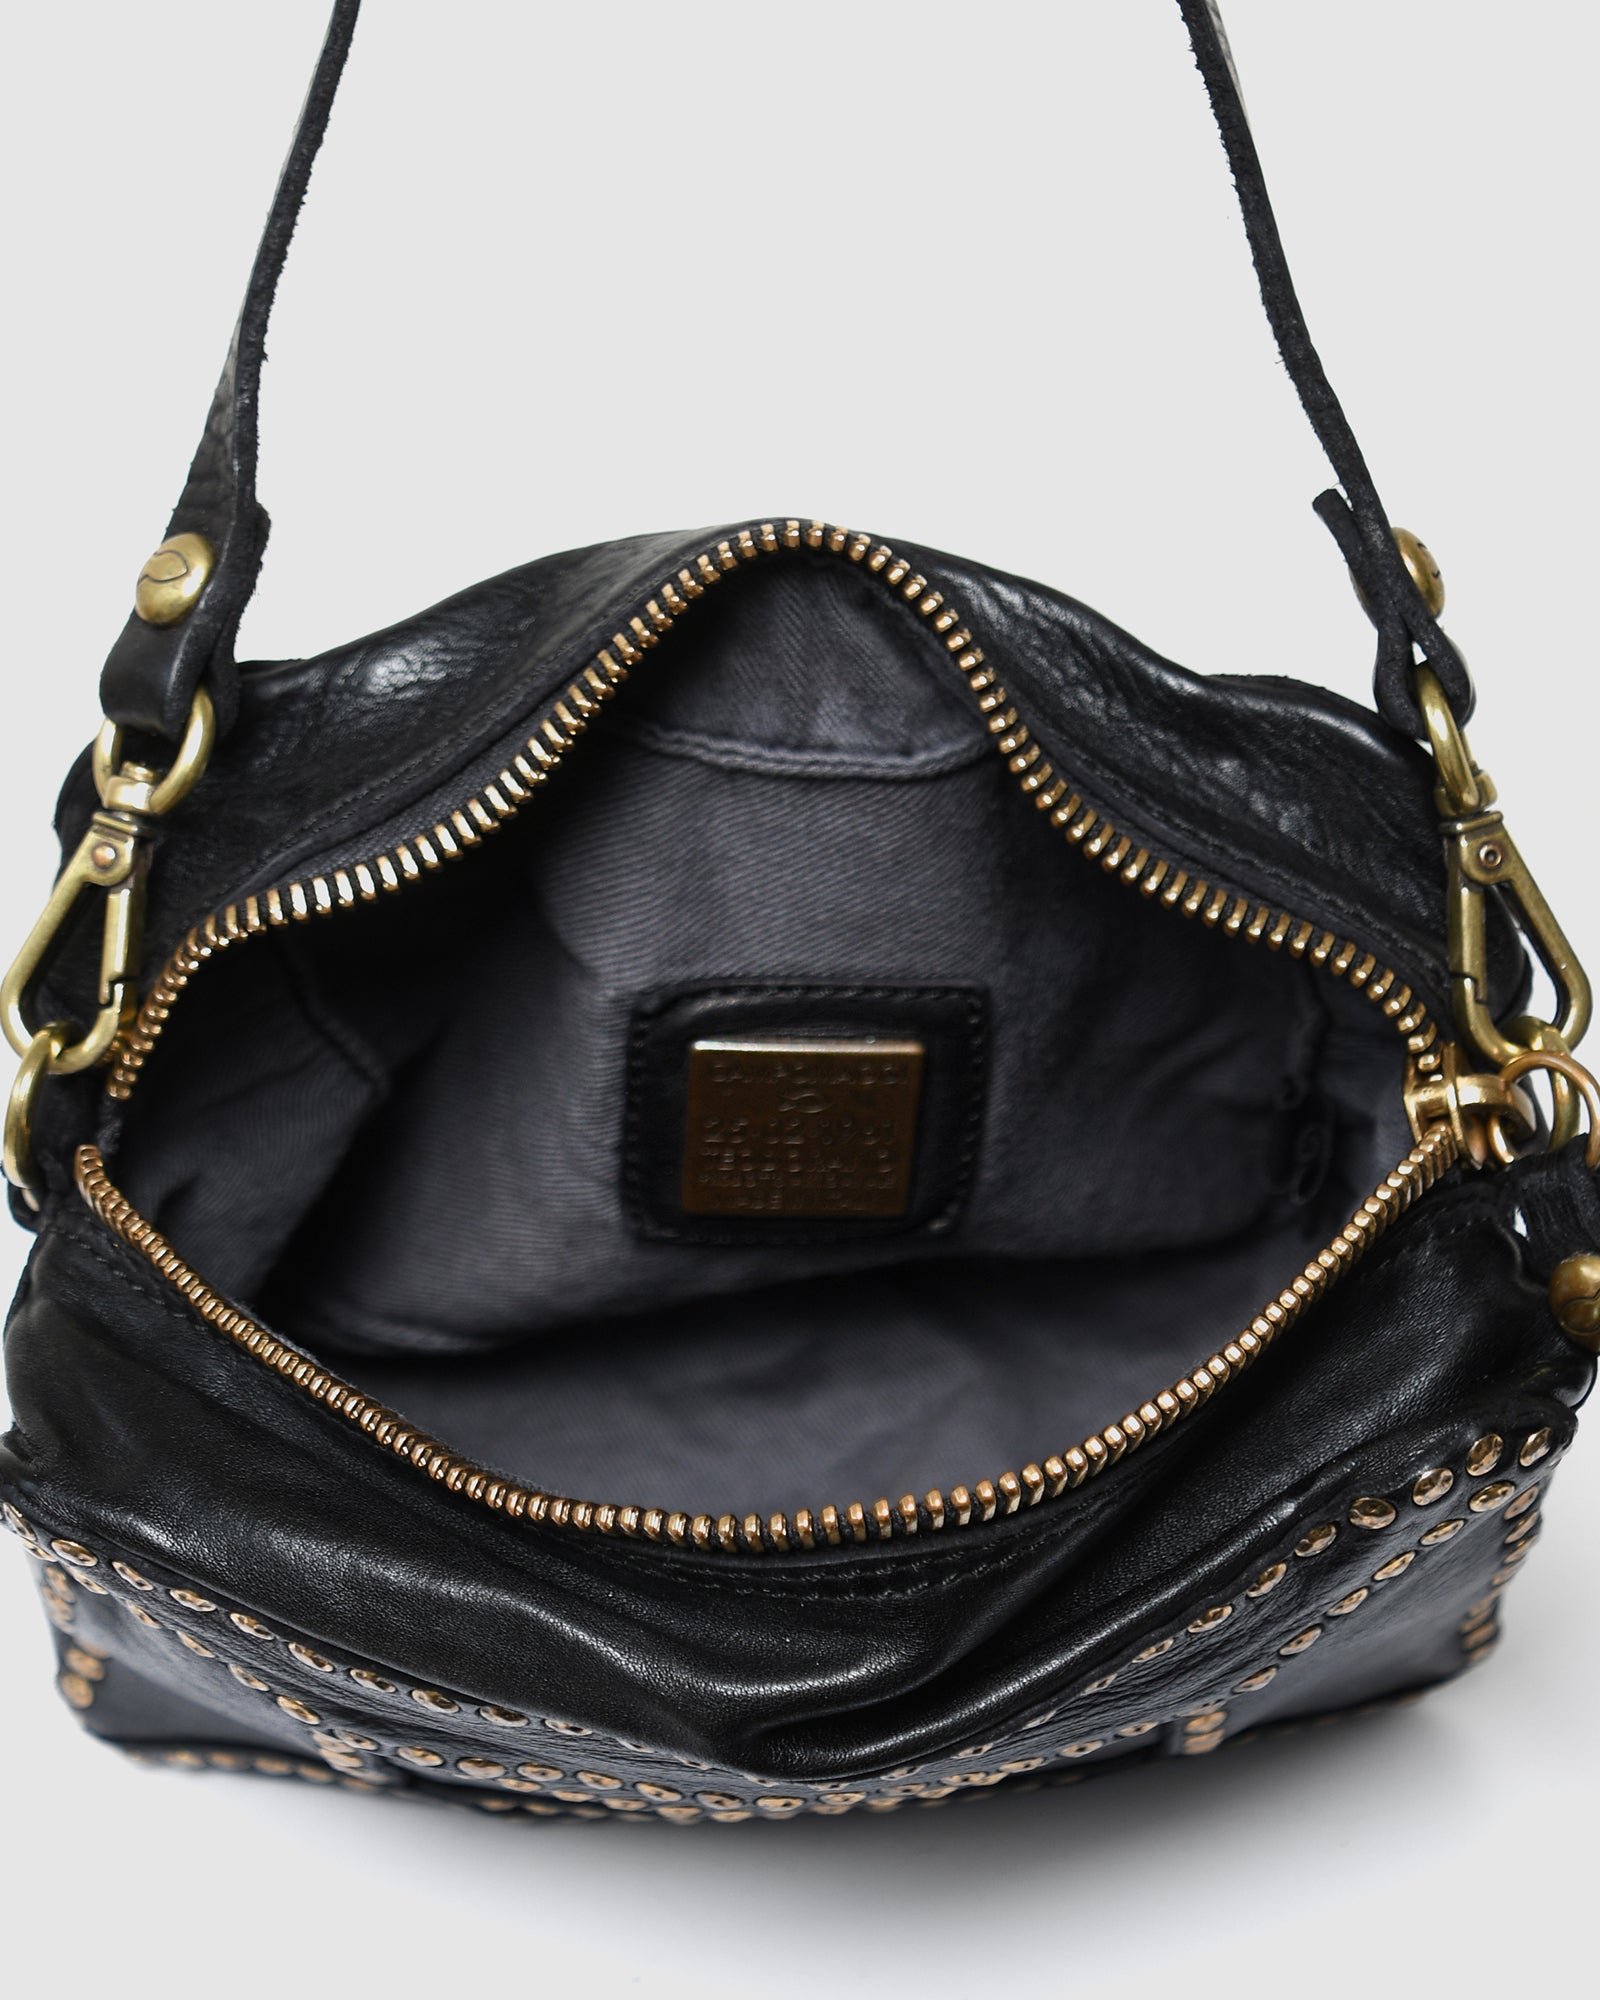 CAMPOMAGGI MONACO SHOULDER BAG BLACK LEATHER